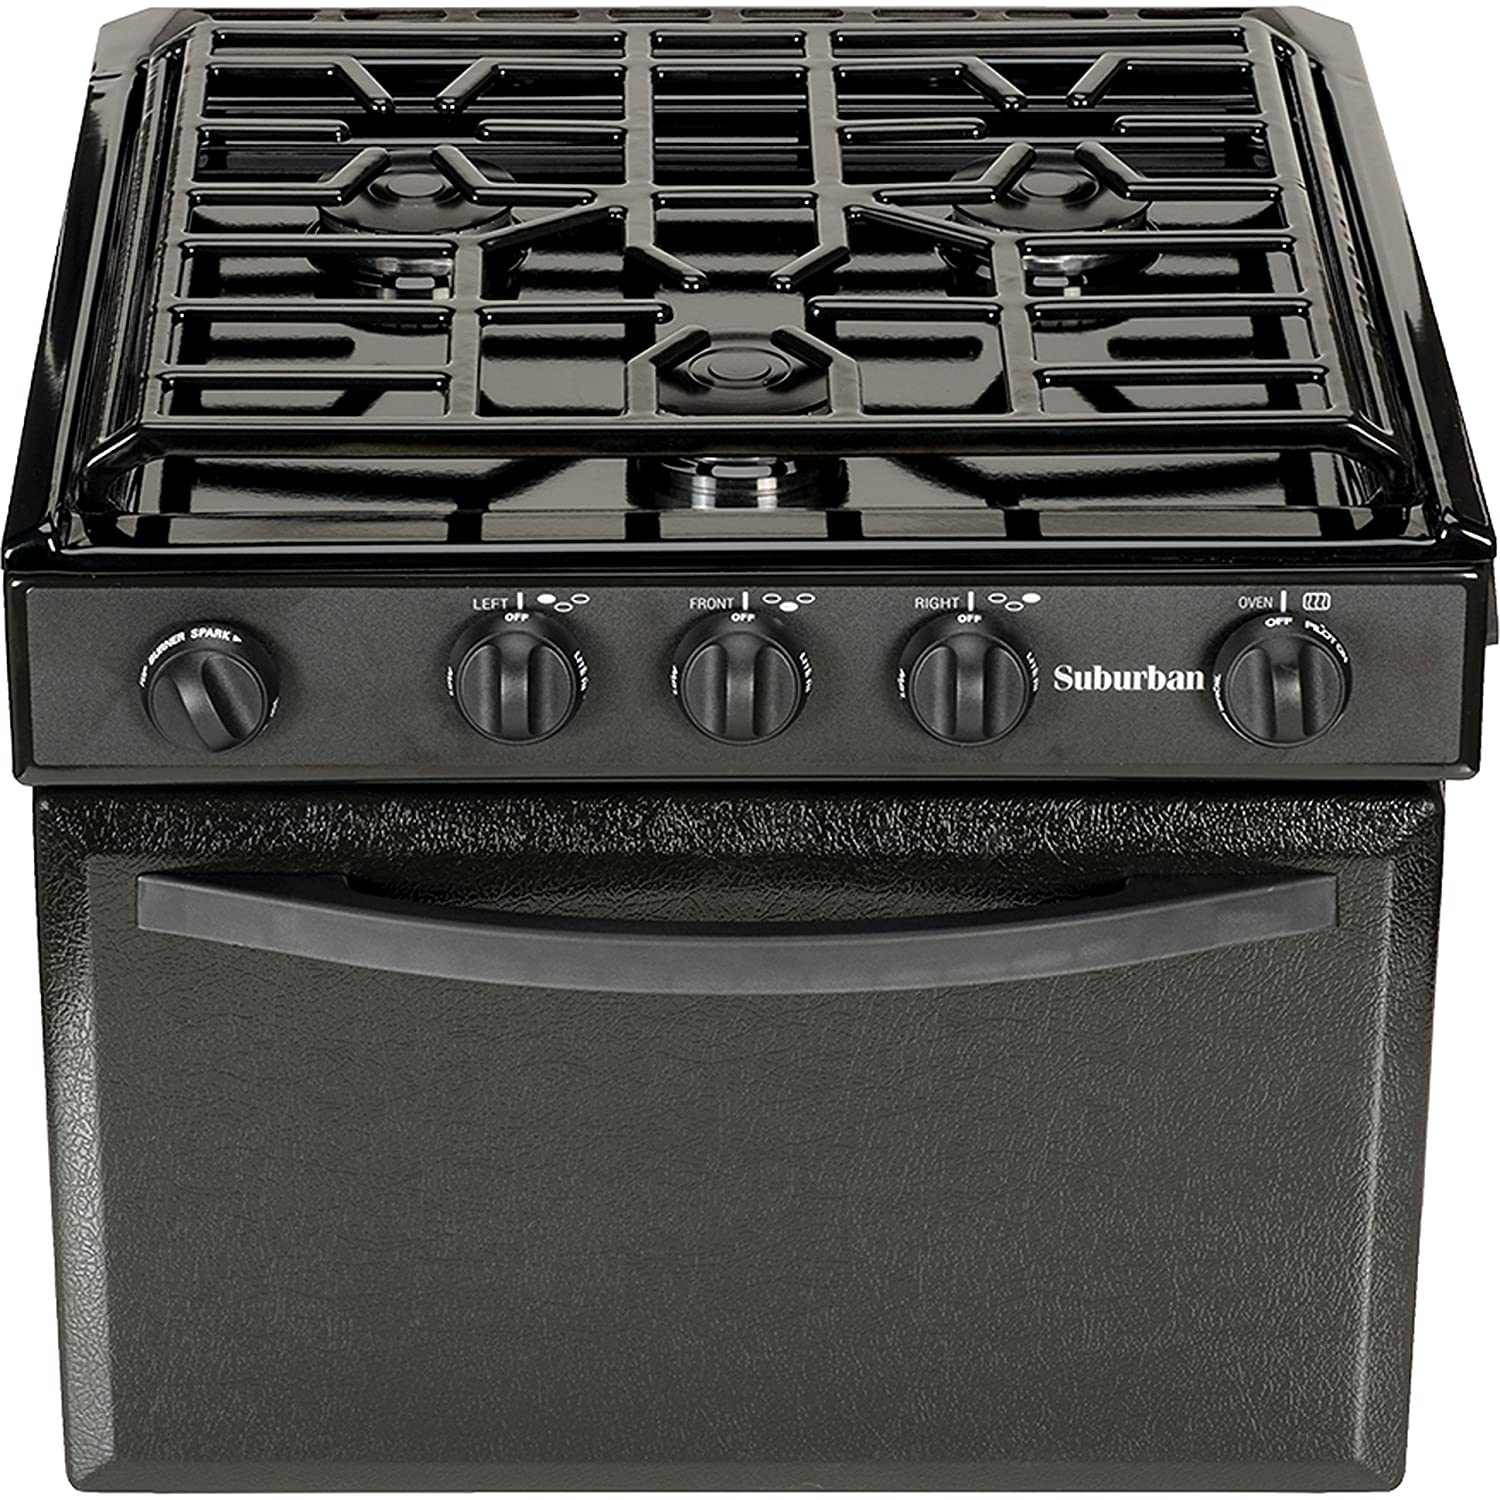 Rv Stove Oven >> Suburban 17 Inch 3206a Gas Range With Conventional Burners Black W Piezo Ignition 17